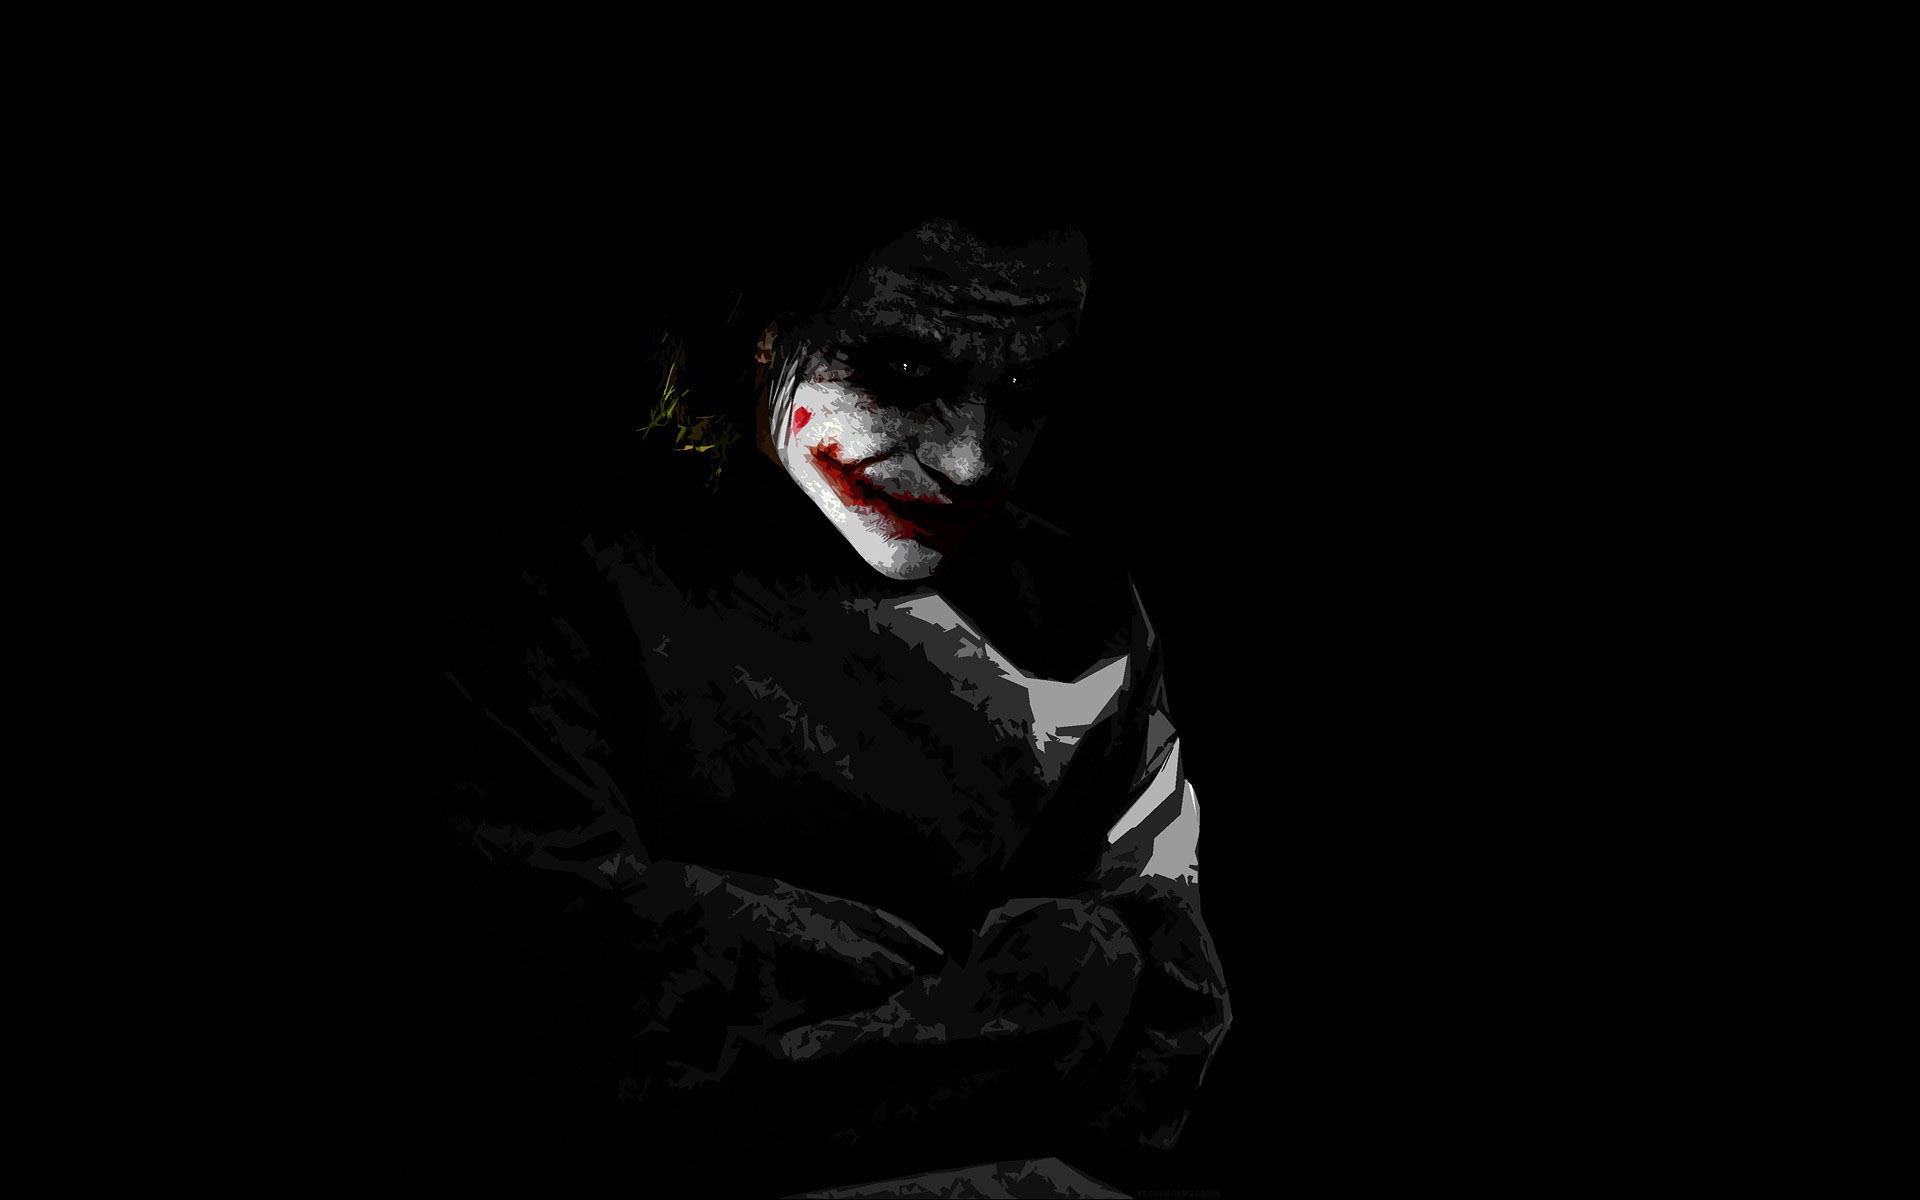 joker hd wallpapers - sf wallpaper